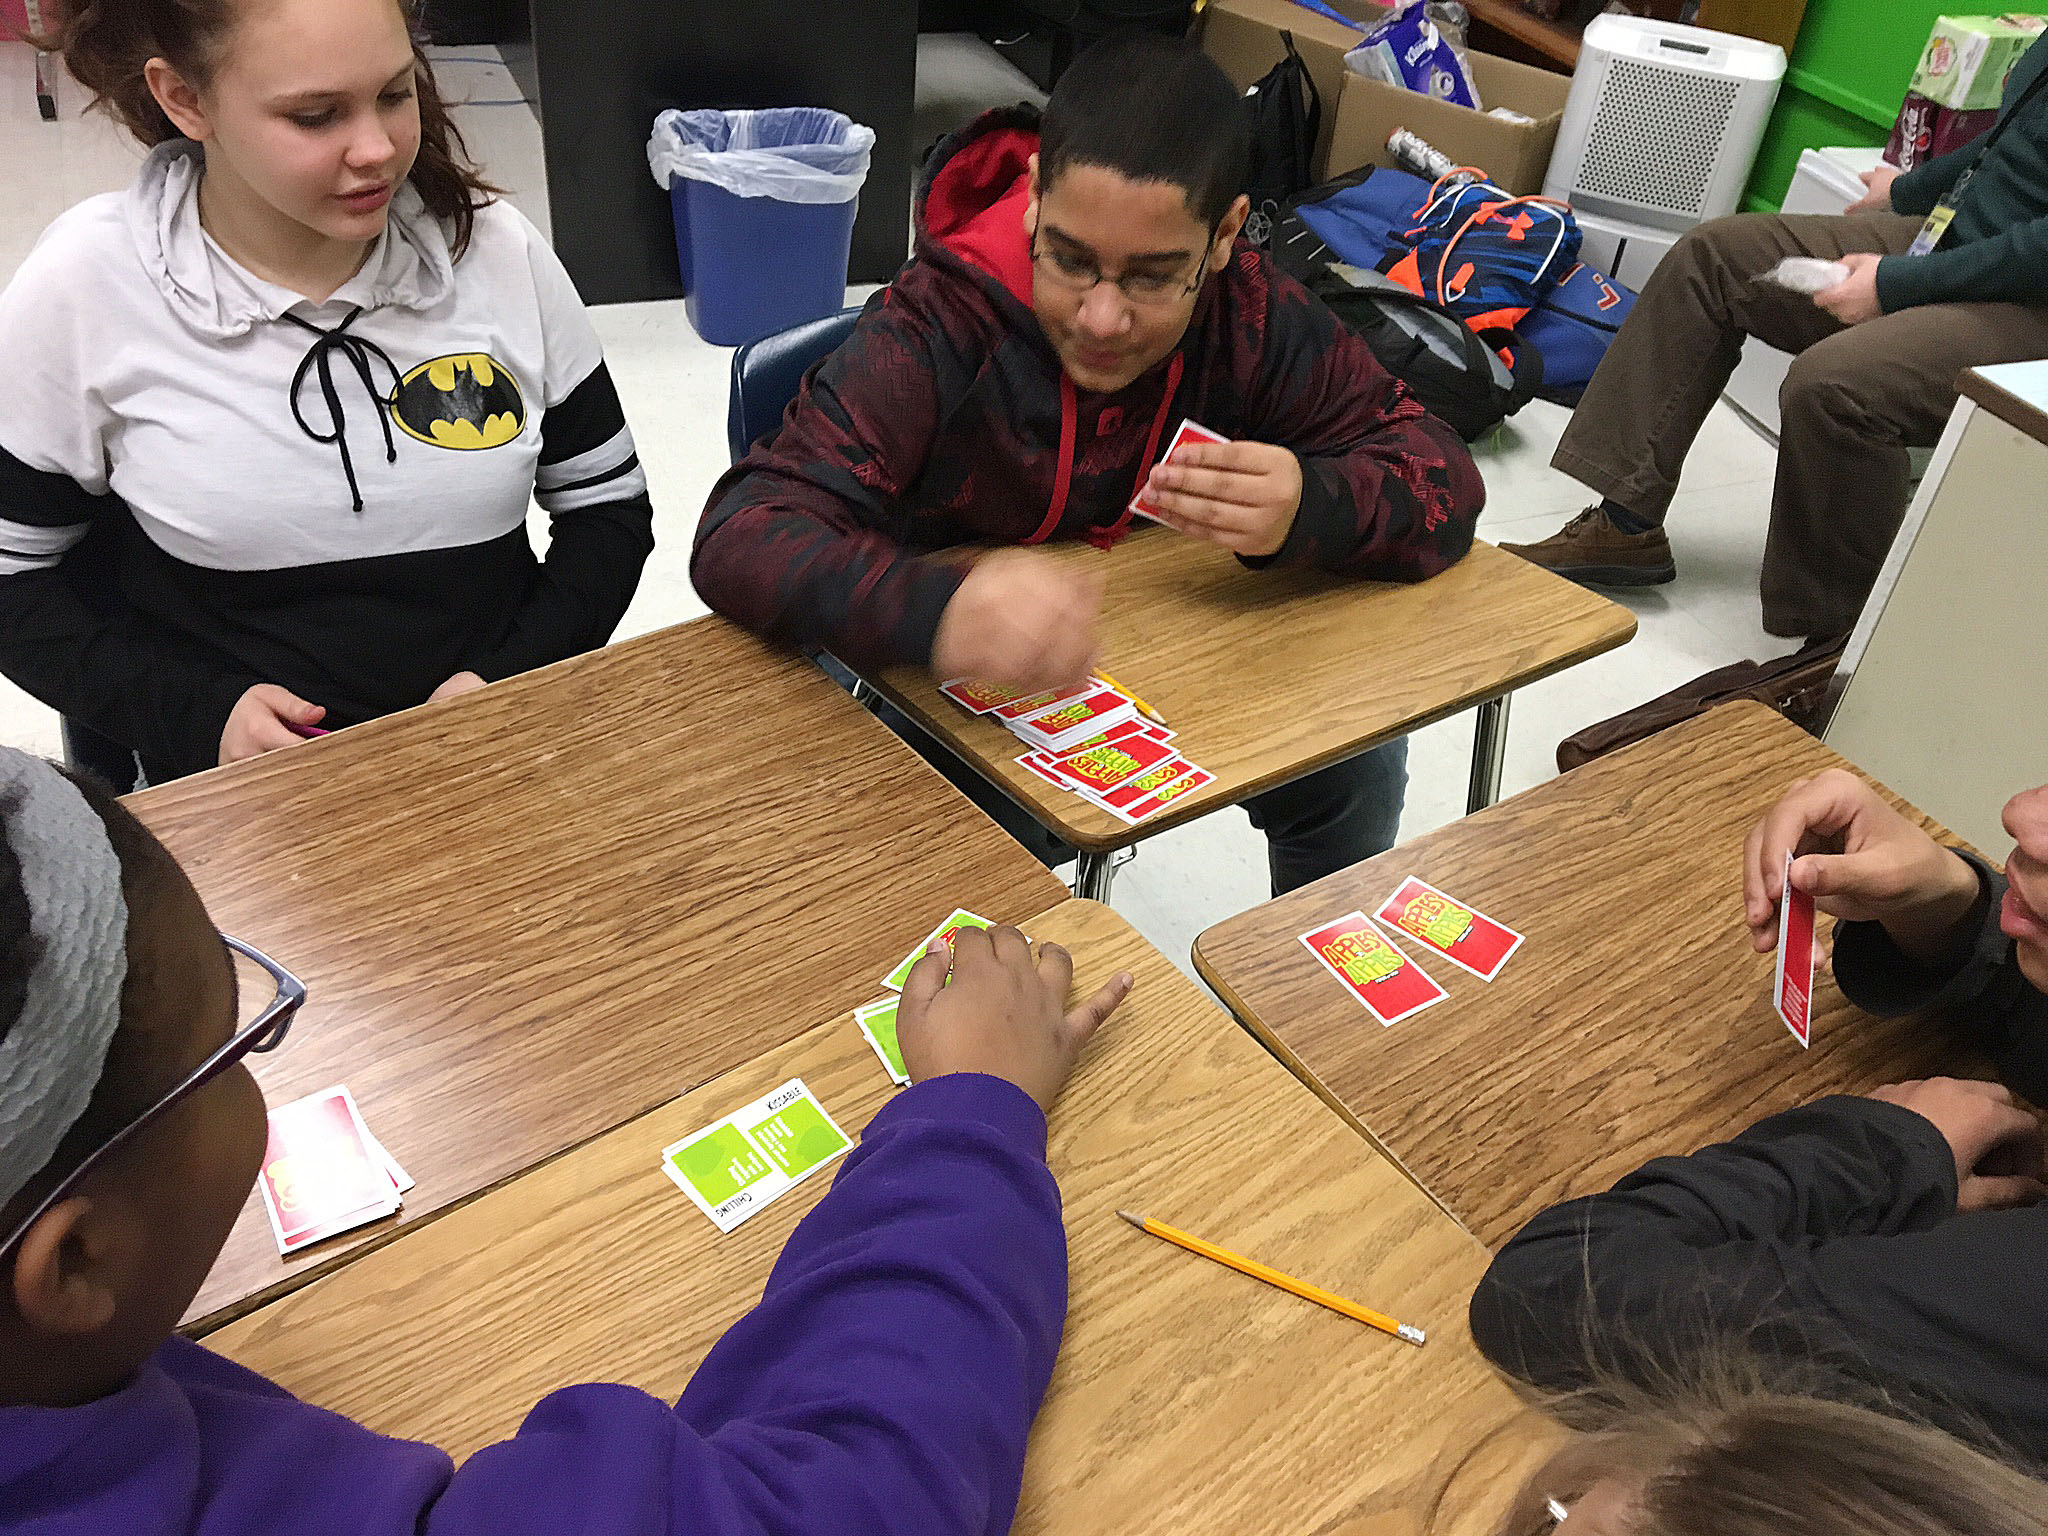 CMS eighth-graders Mystique Jones, at left, and Tyreece Washington play Apples to Apples with their classmates.